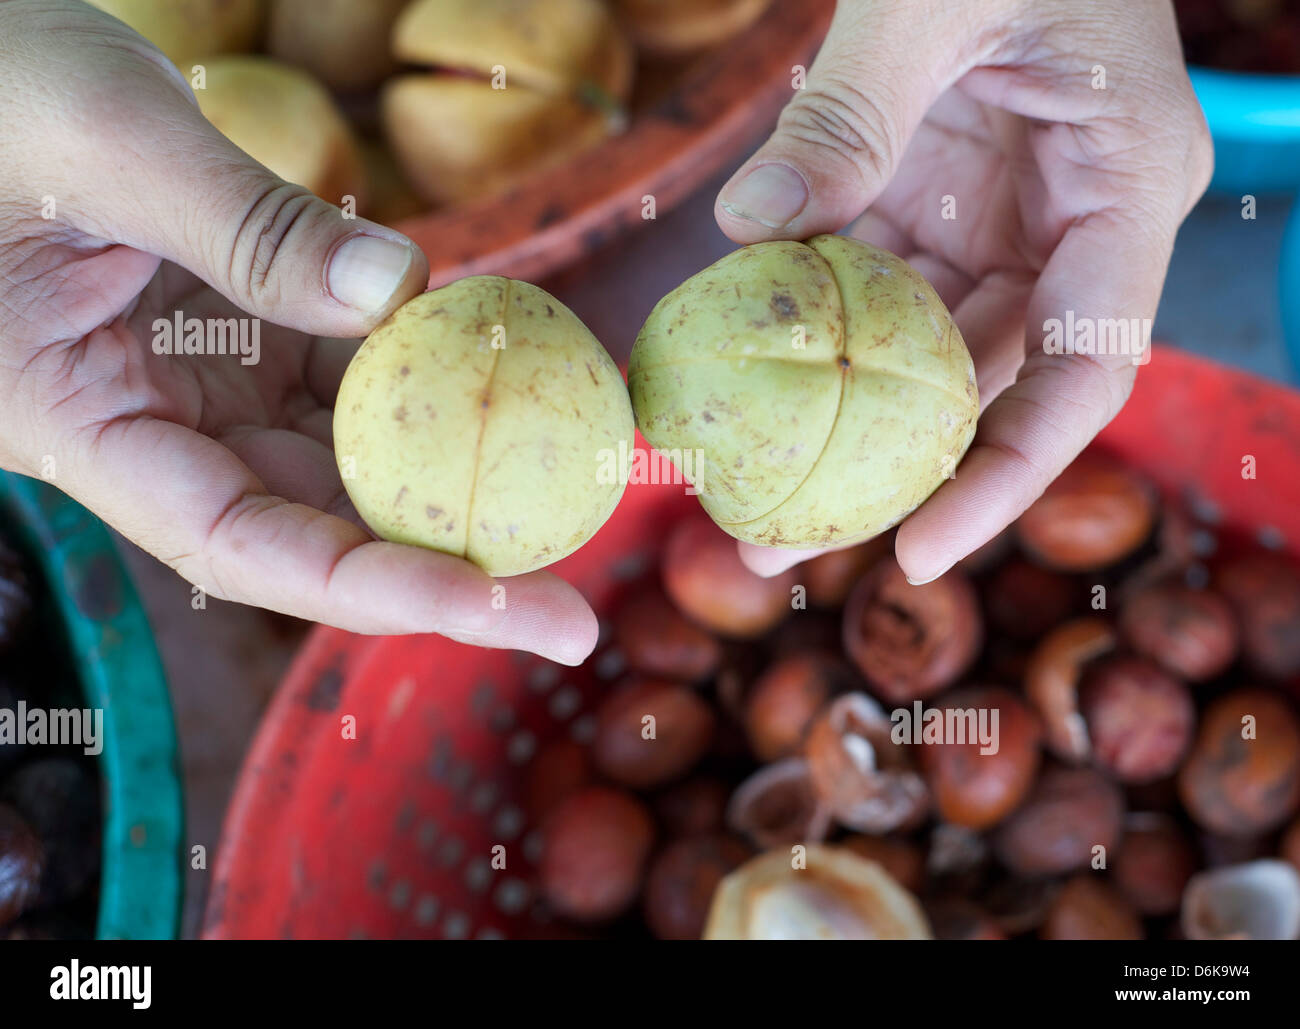 Comparing nutmeg fruits with male on the right and female on the left, Penang, Malaysia, Southeast Asia, Asia - Stock Image